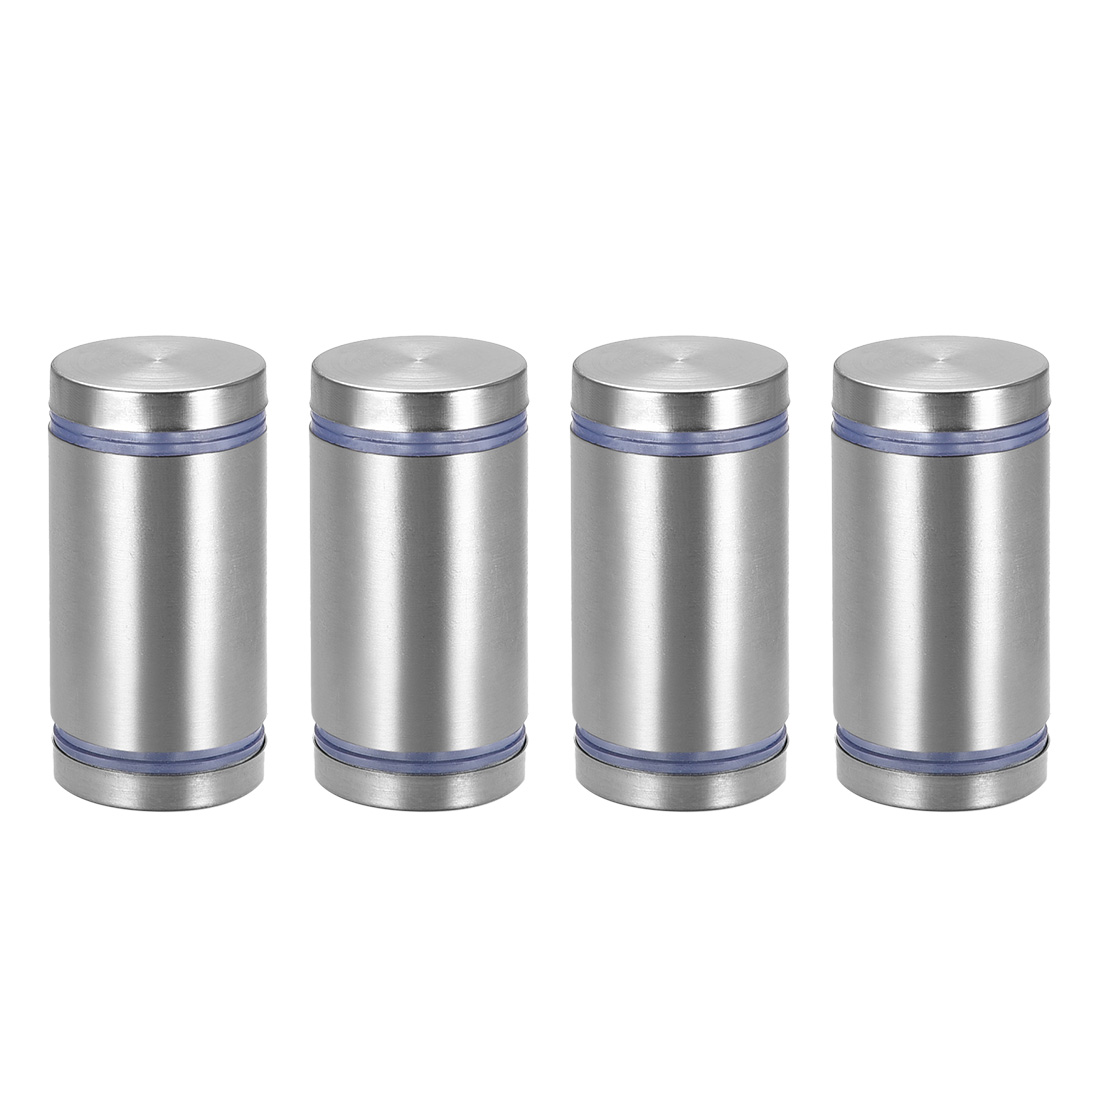 Glass Standoff Double Head Stainless Steel Standoff Holder 25mm x 45mm 4 Pcs